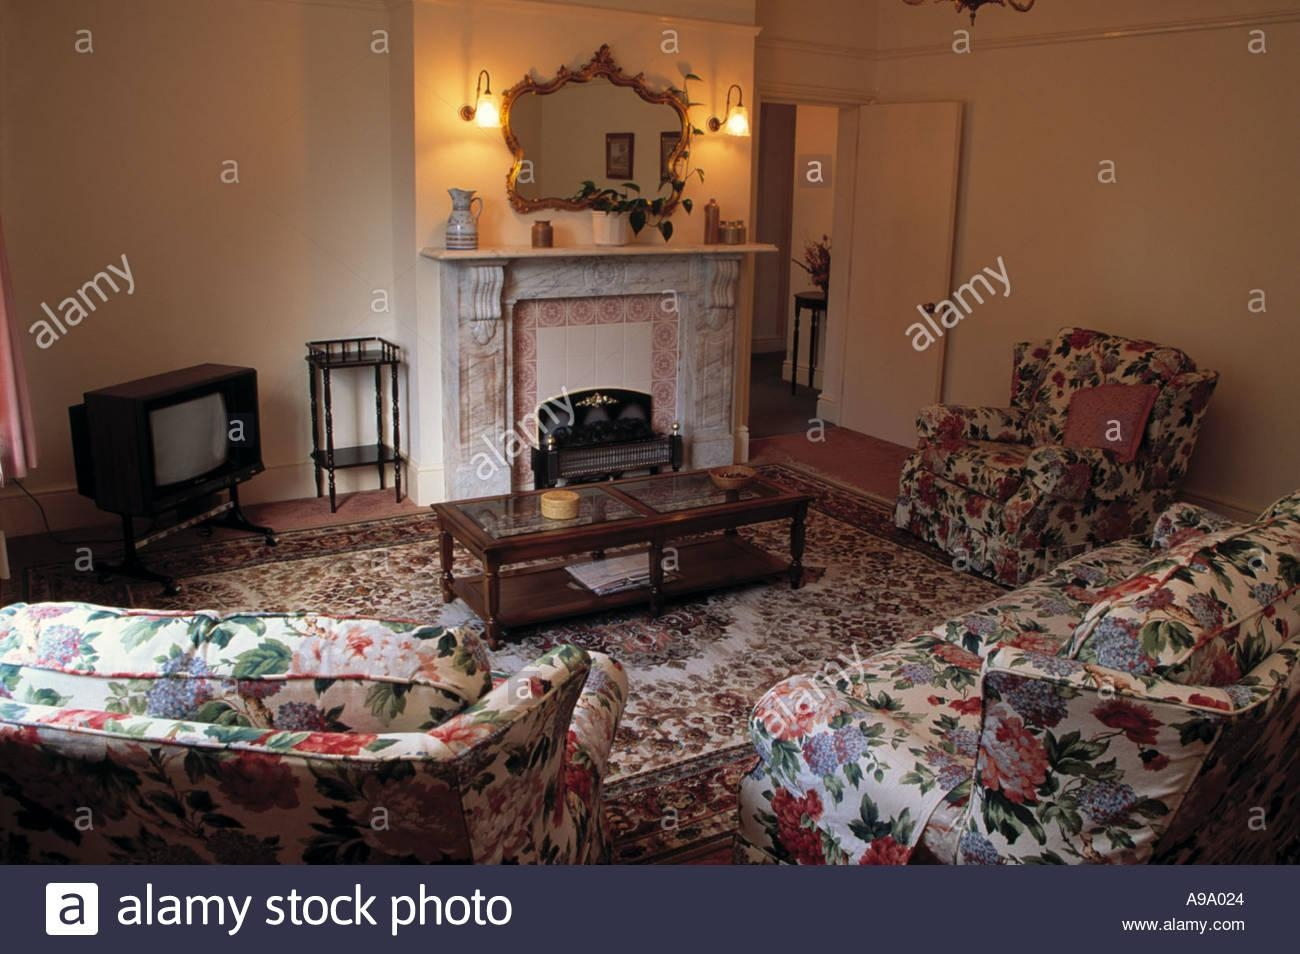 Chintz Sofa And Armchairs In Dated Living Room With Television In Intended For Chintz Floral Sofas (Image 17 of 22)